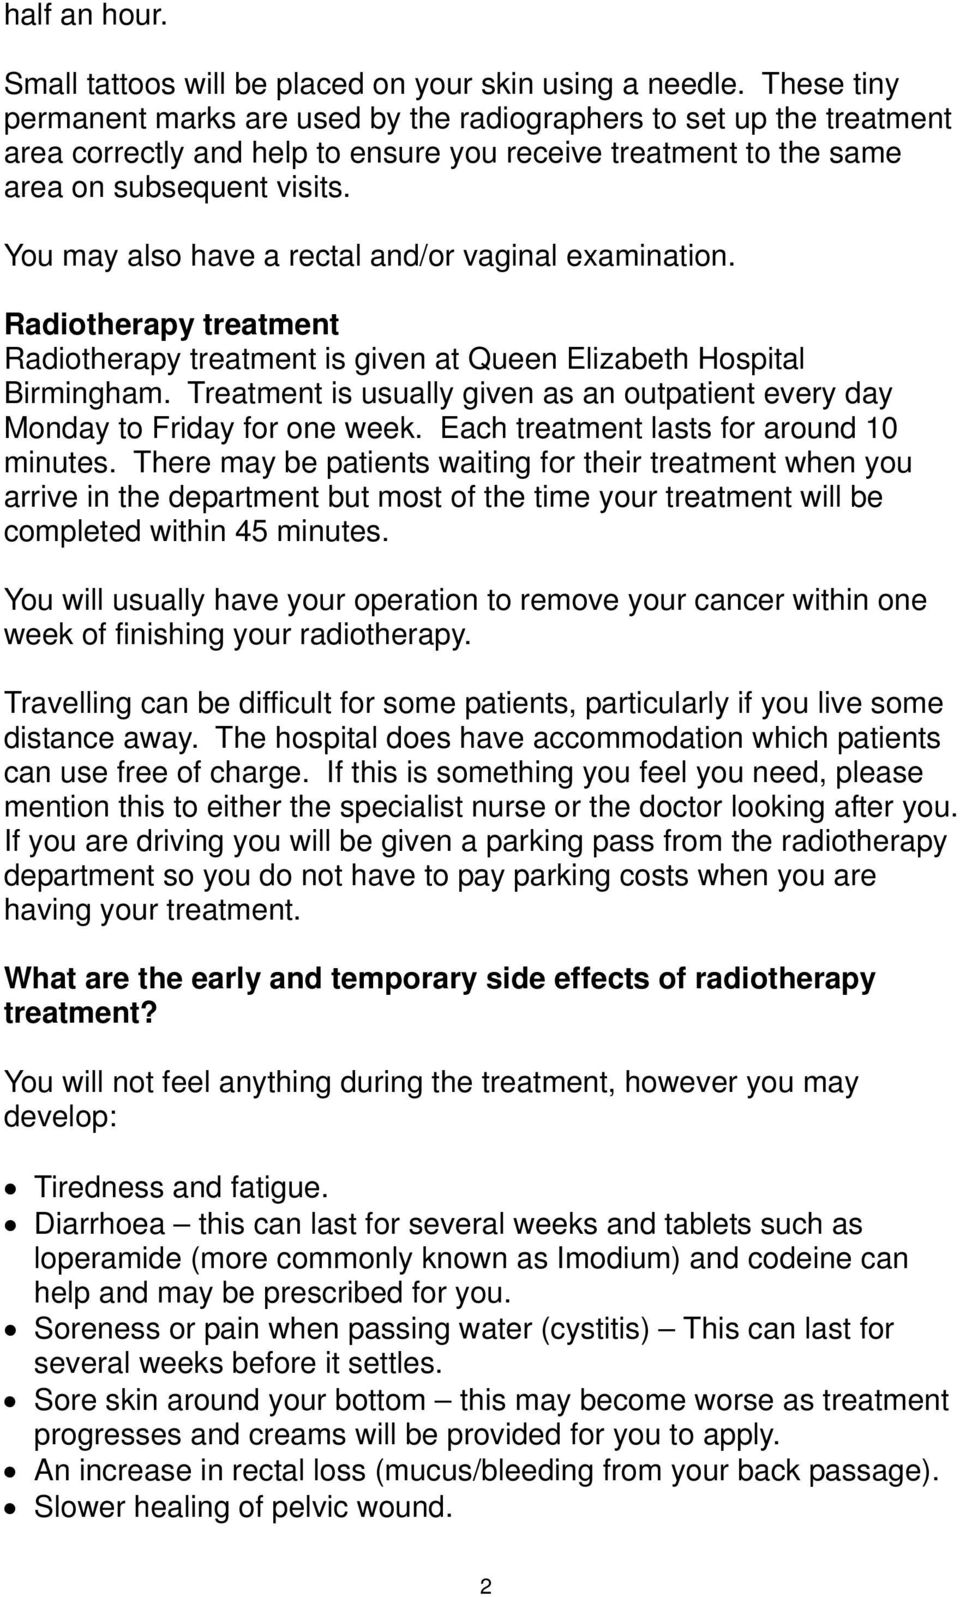 You may also have a rectal and/or vaginal examination. Radiotherapy treatment Radiotherapy treatment is given at Queen Elizabeth Hospital Birmingham.